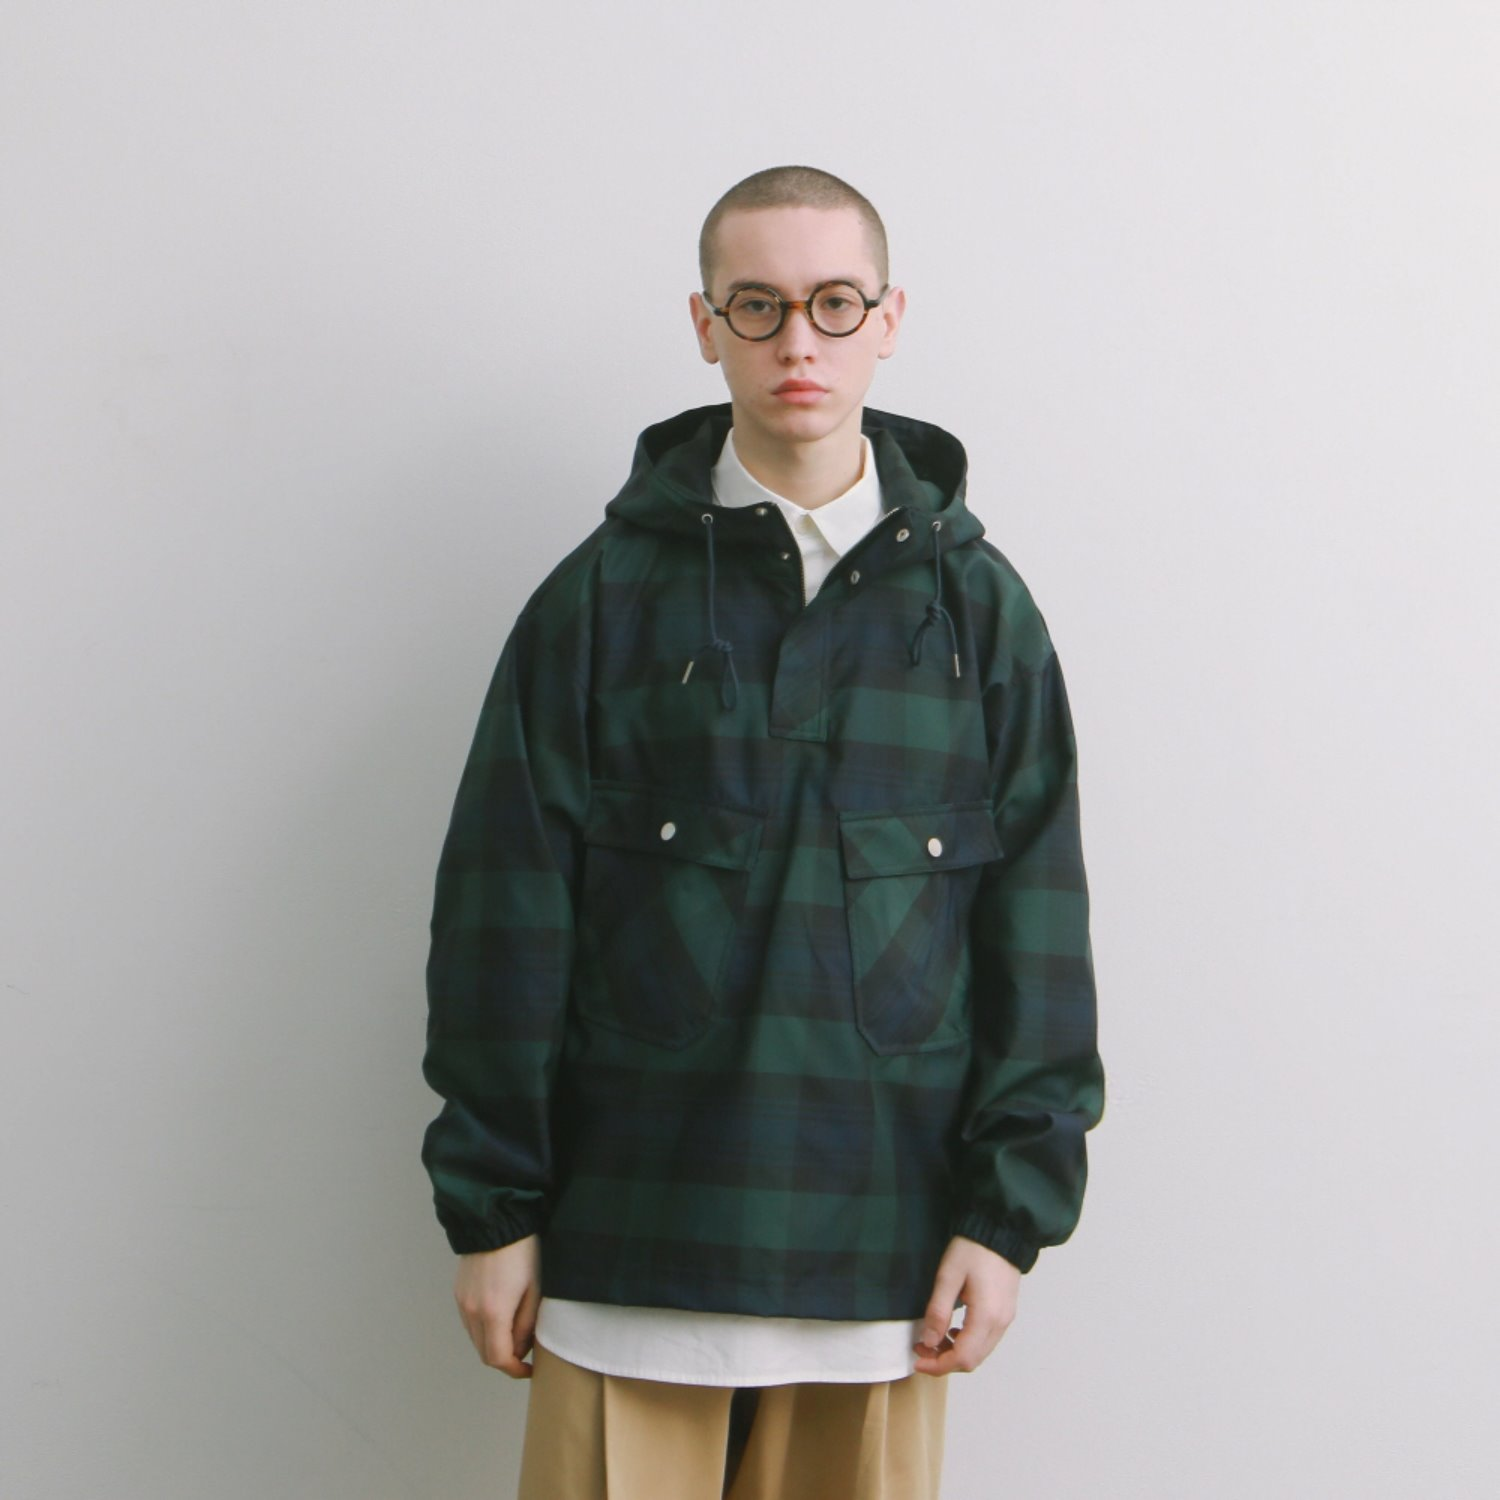 Hotel Security Oversized Anorak Jacket (B.Watch Check)